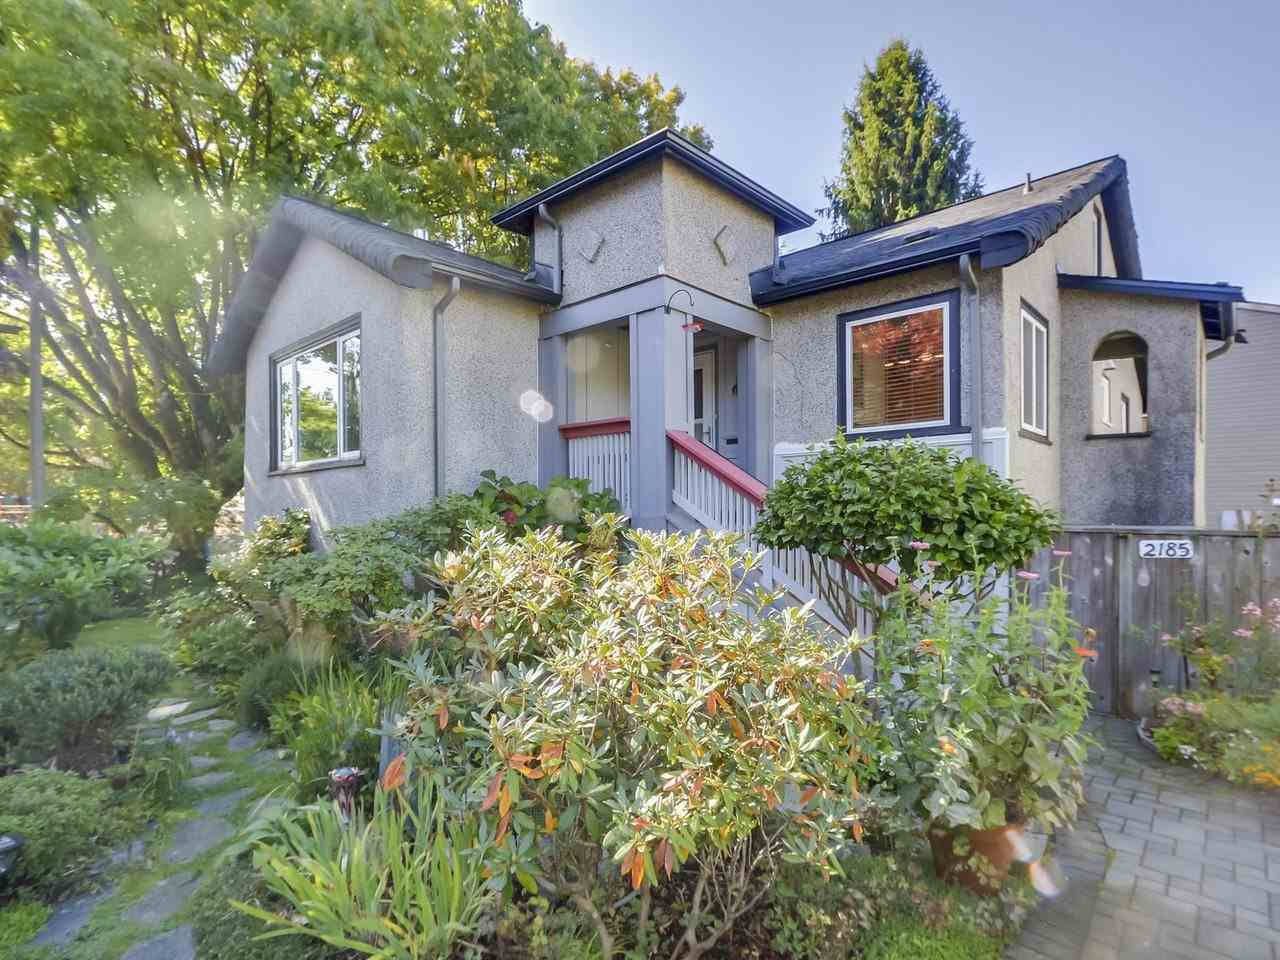 """Main Photo: 2185 COLLINGWOOD Street in Vancouver: Kitsilano House for sale in """"Kitsilano"""" (Vancouver West)  : MLS®# R2311078"""